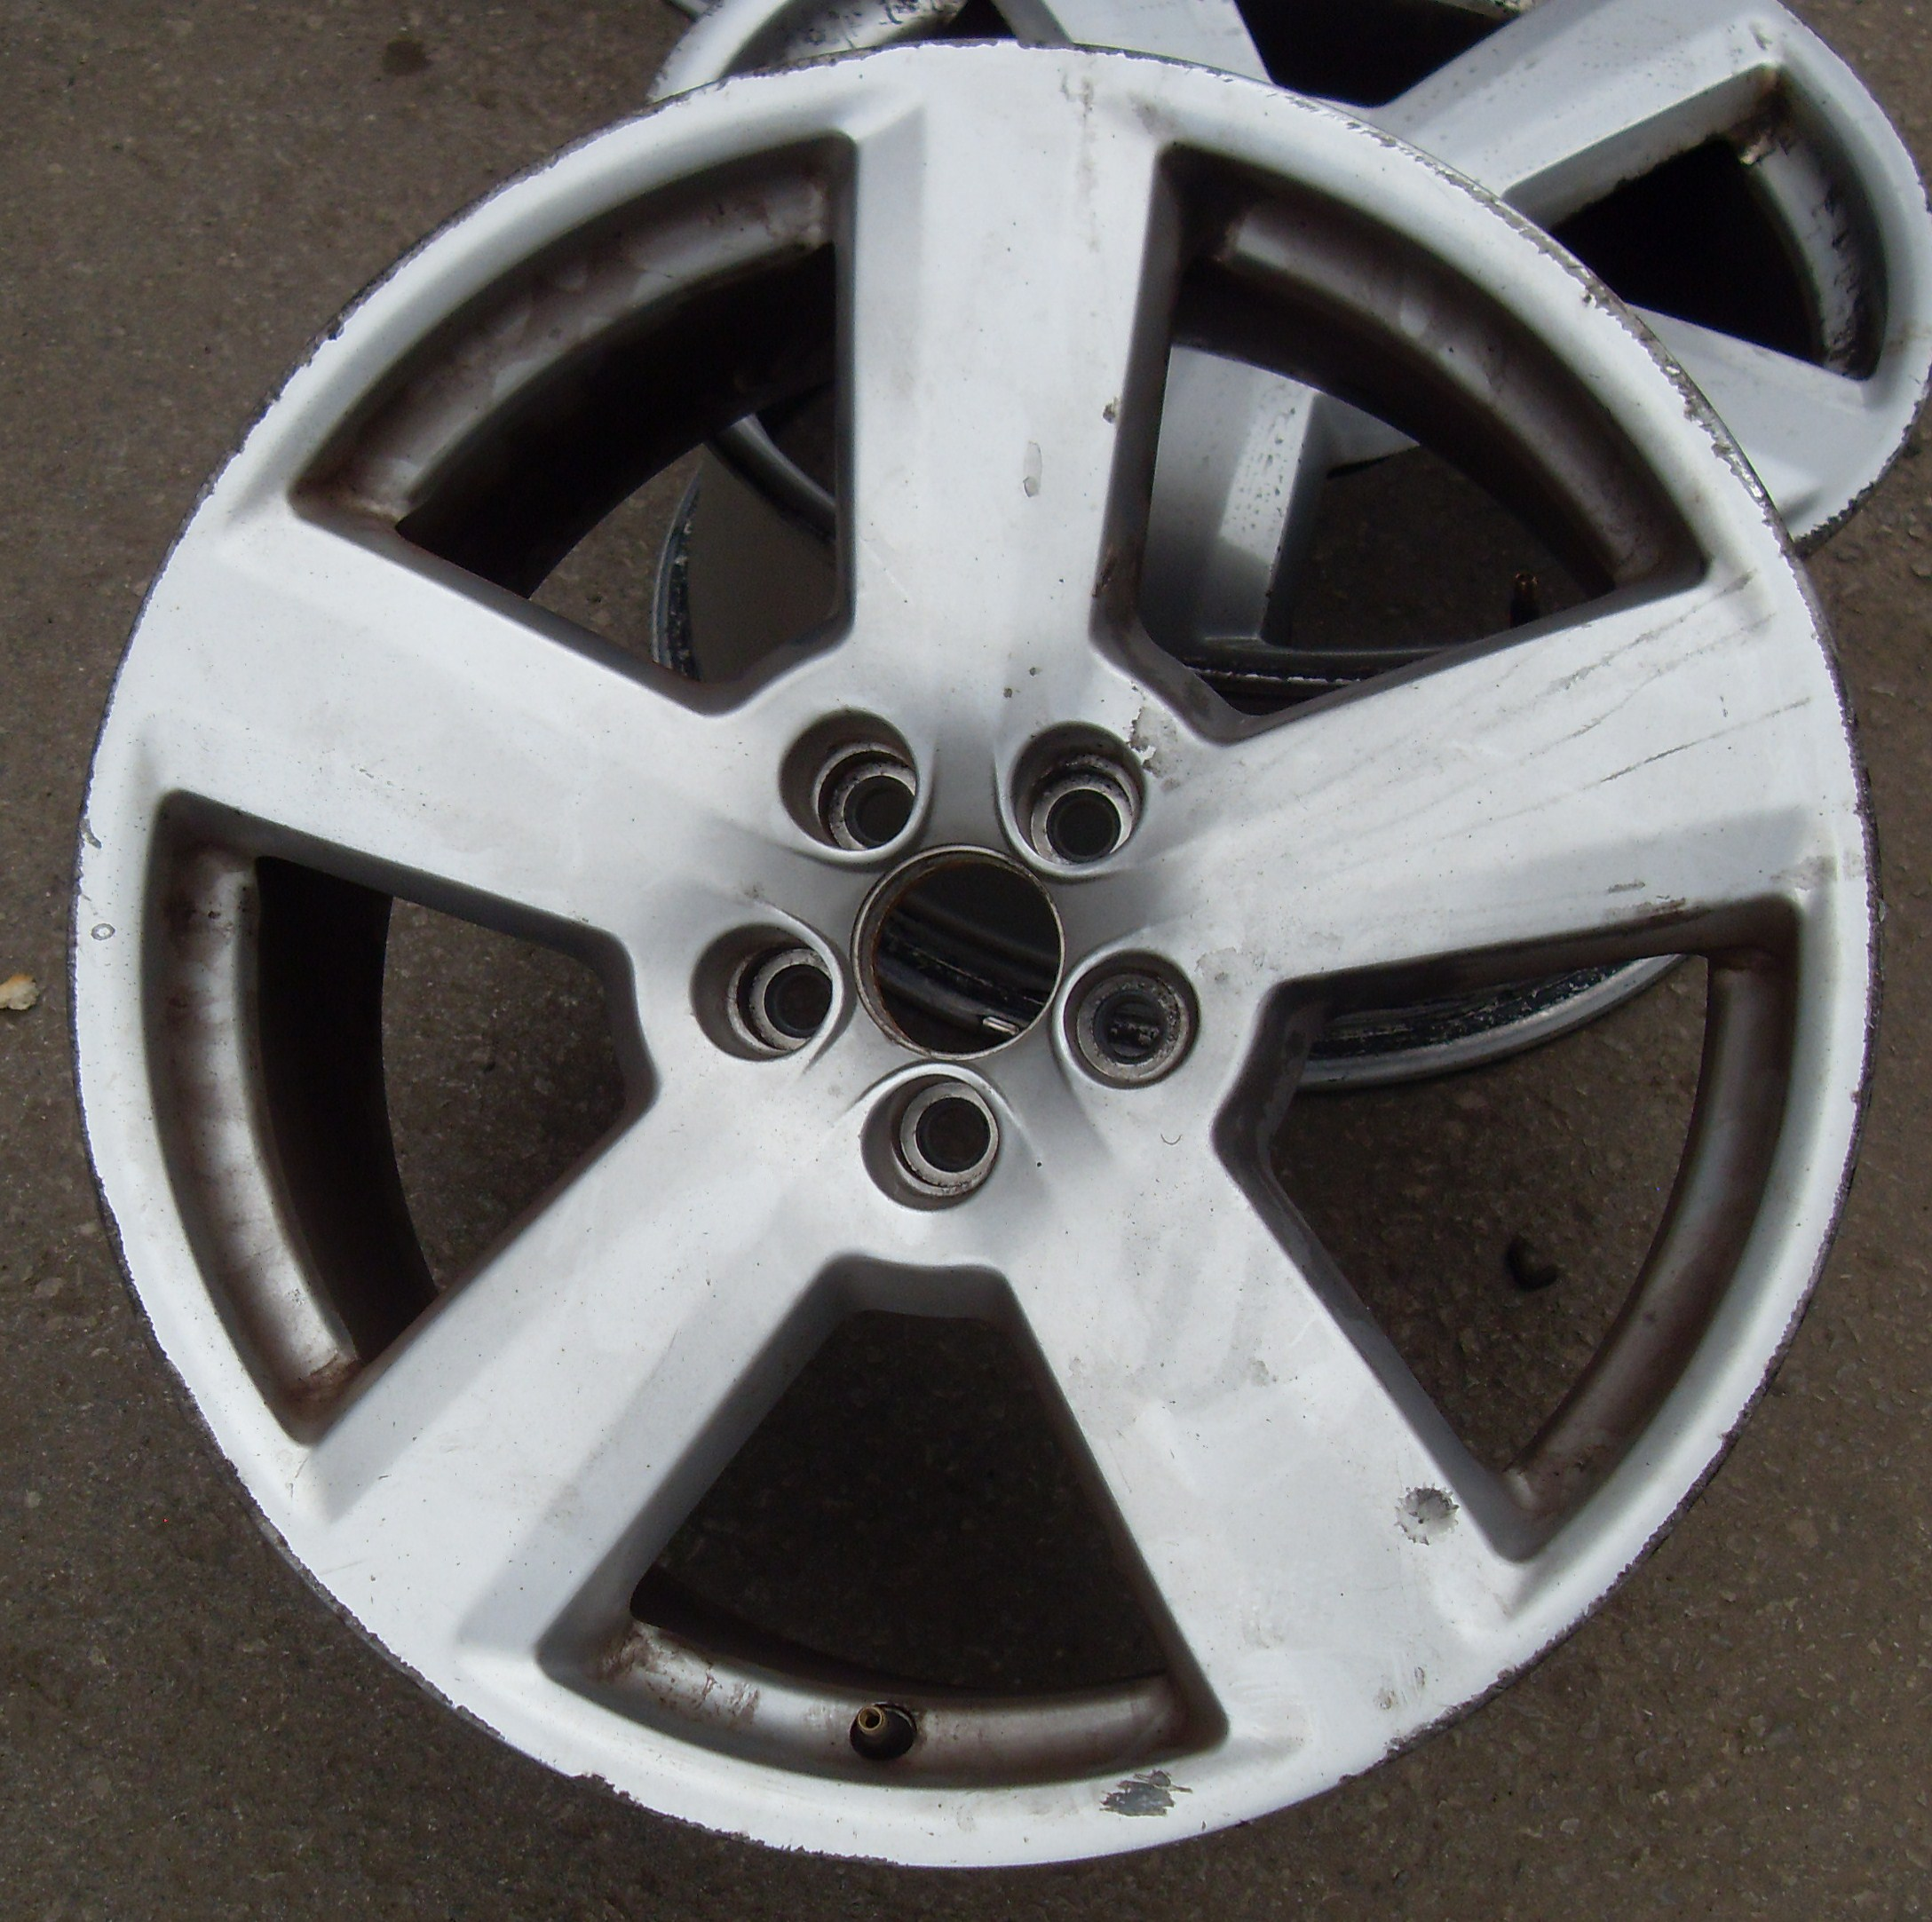 Polish Aluminum Wheels Mirror Finish http://www.pureklas.co.uk/wheels/audi-rs6-style-wheels-fully-refurbished